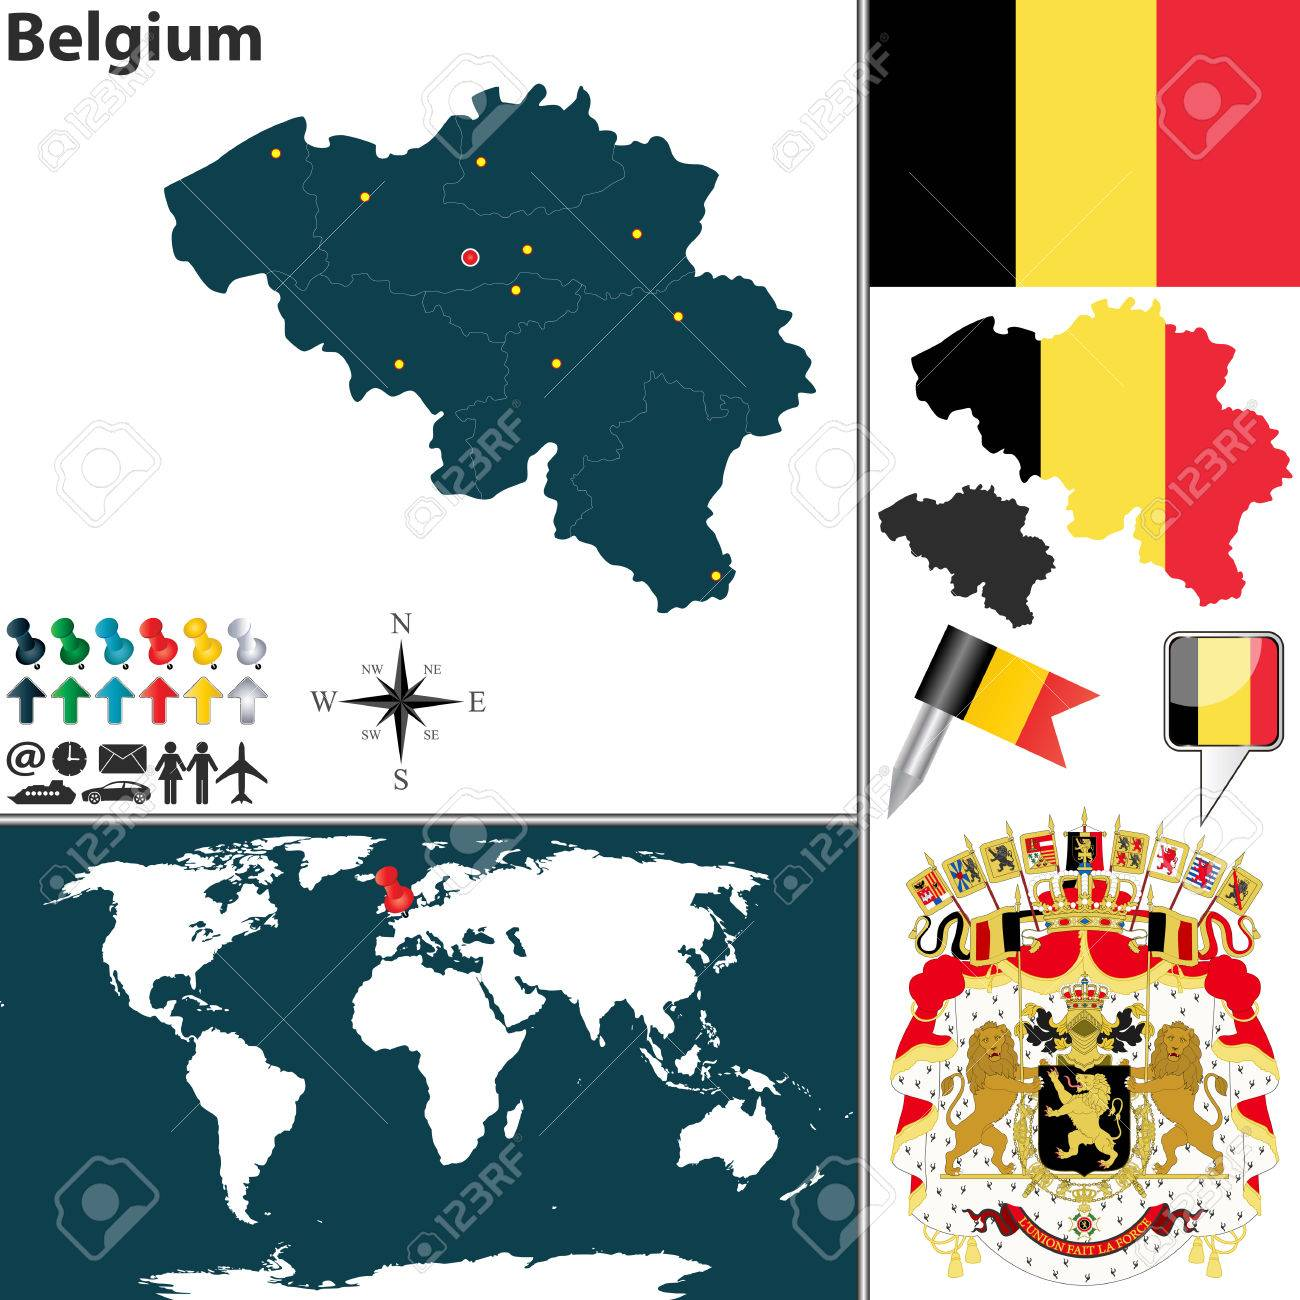 map of belgium with regions coat of arms and location on world map stock vector